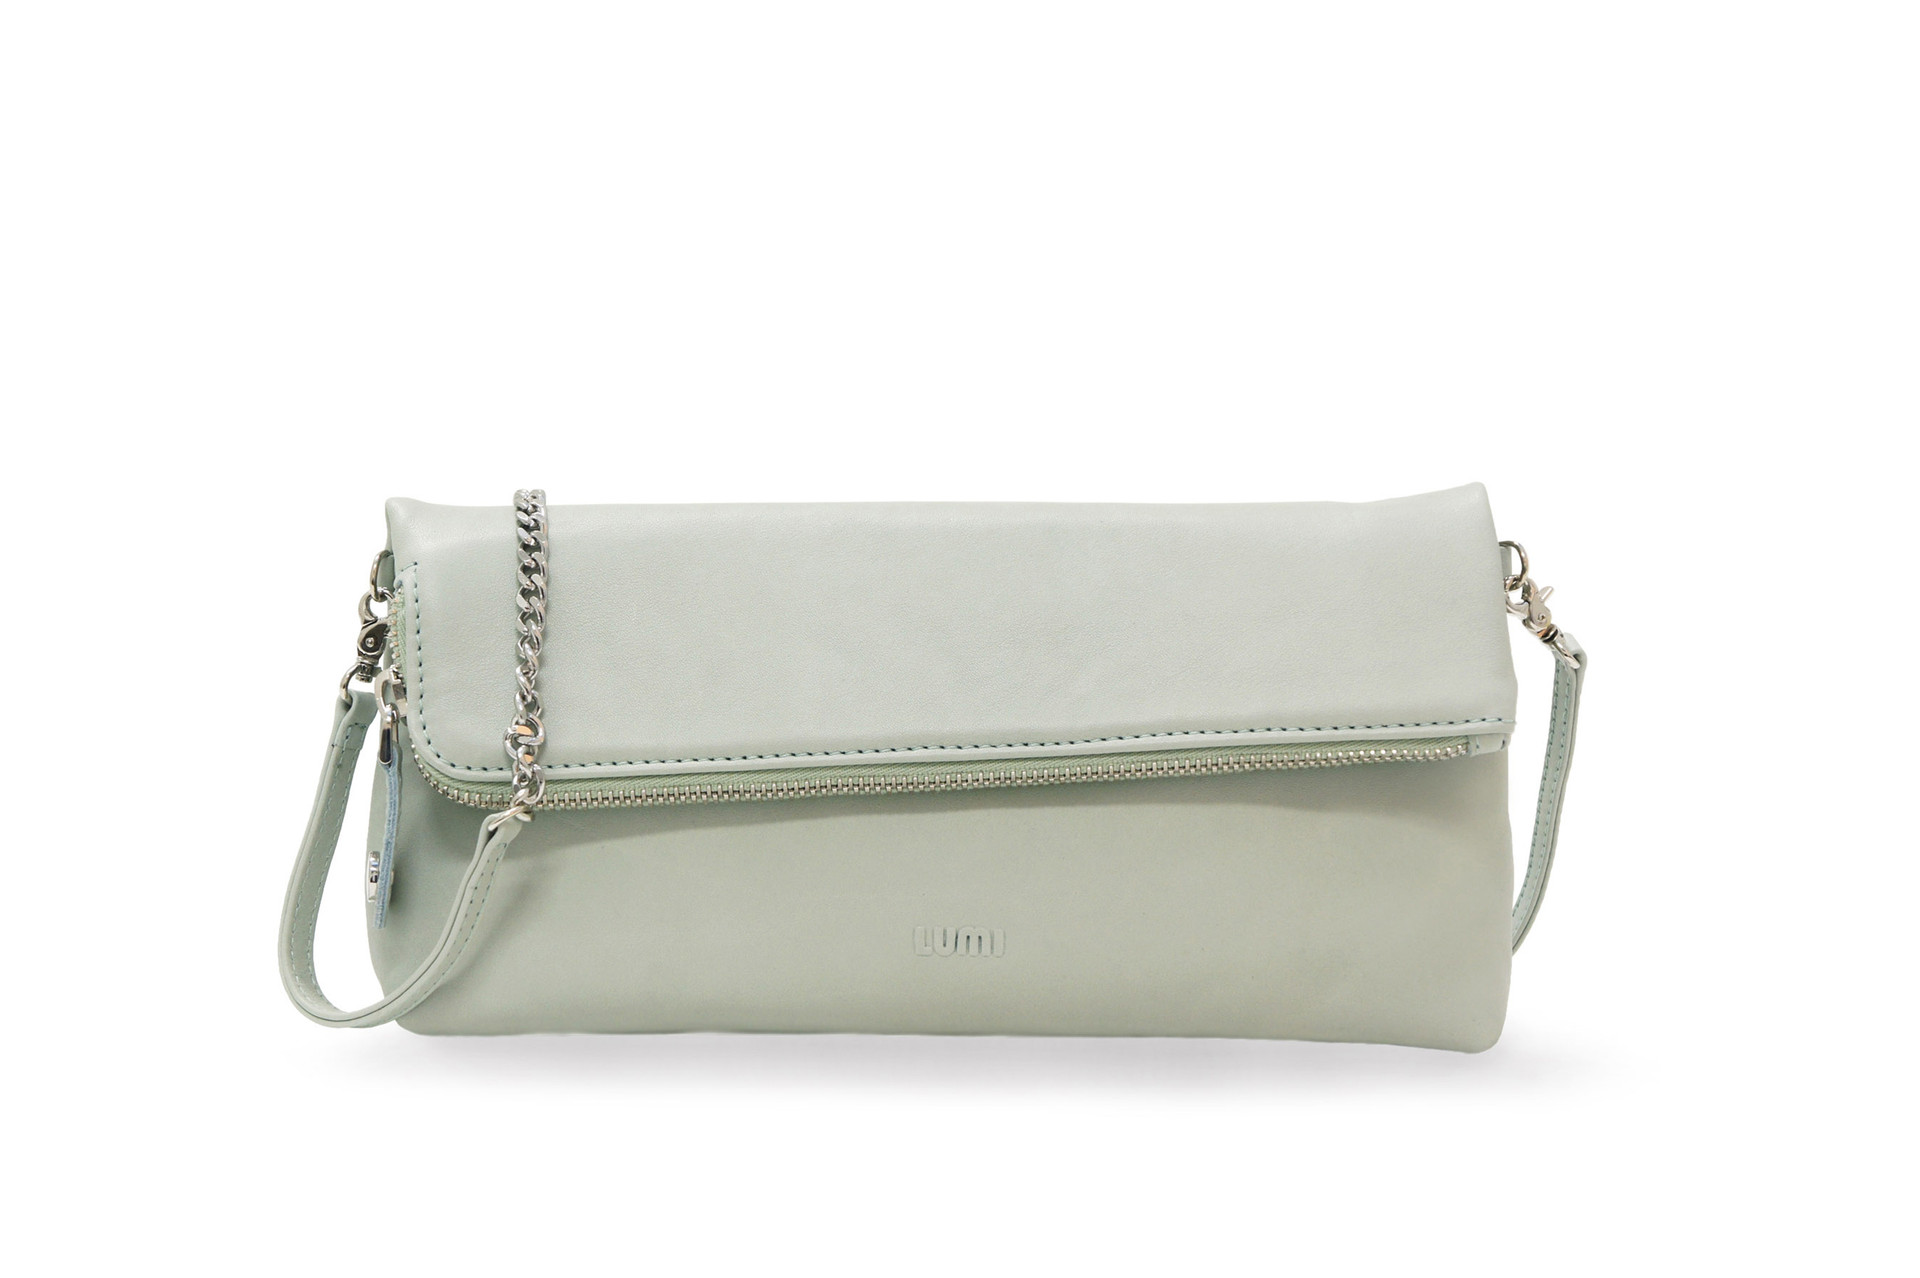 In veg tan leather, it is a small crossbody bag, sold in three colors, carbon, camel, and chalk (in the picture). With the detachable strap, it can be used as an evening pouch and a daytime bag.